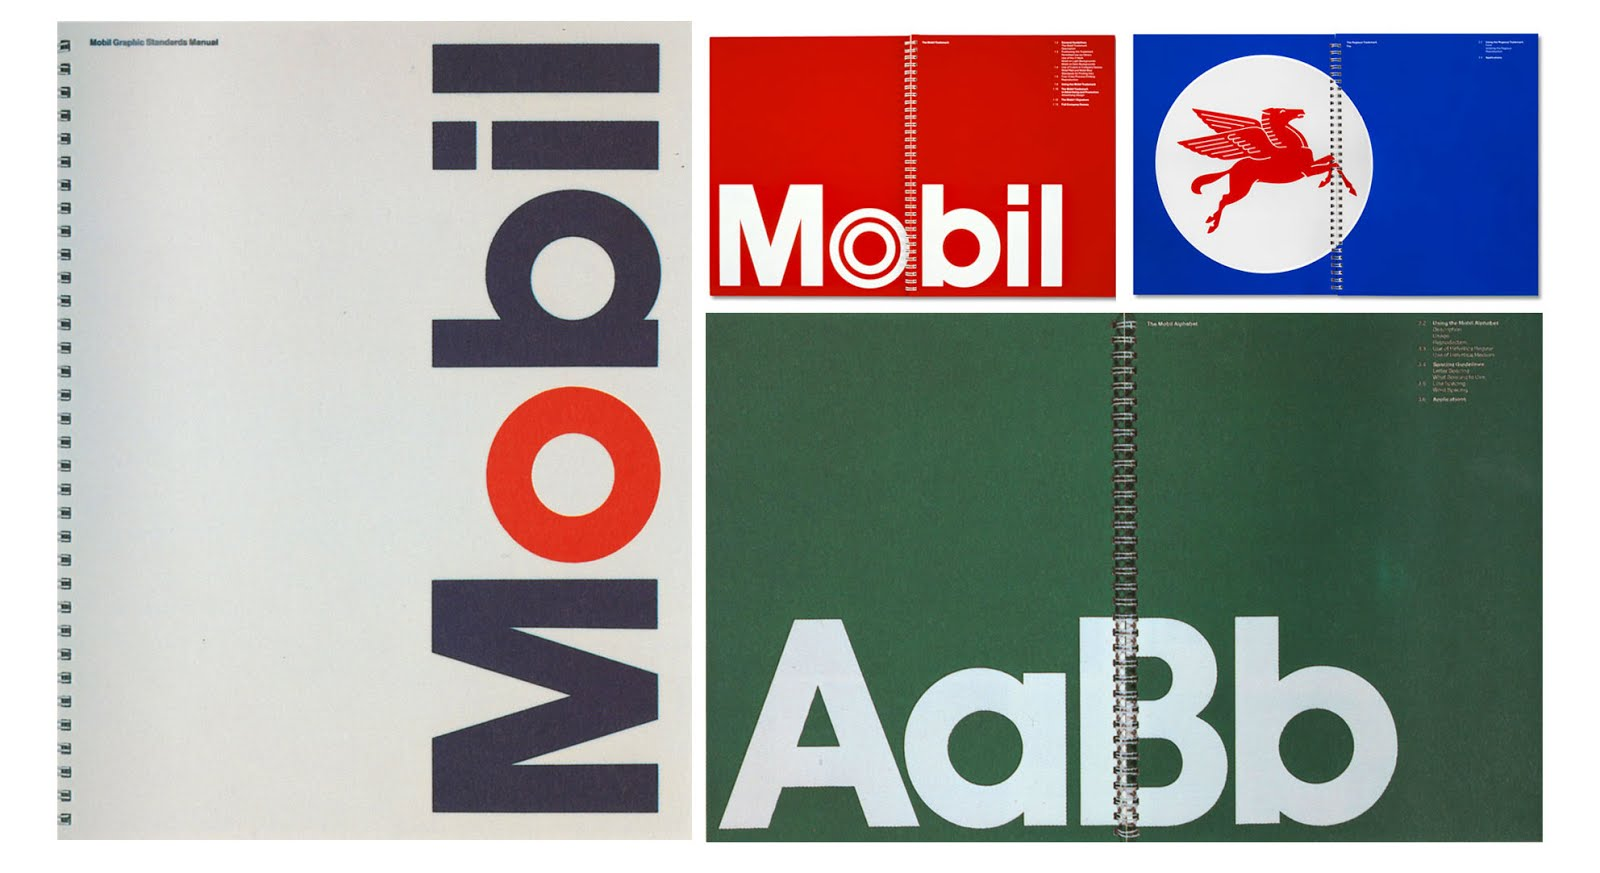 chermayeff-and-geismar-mobil-oil-identite-1964-1